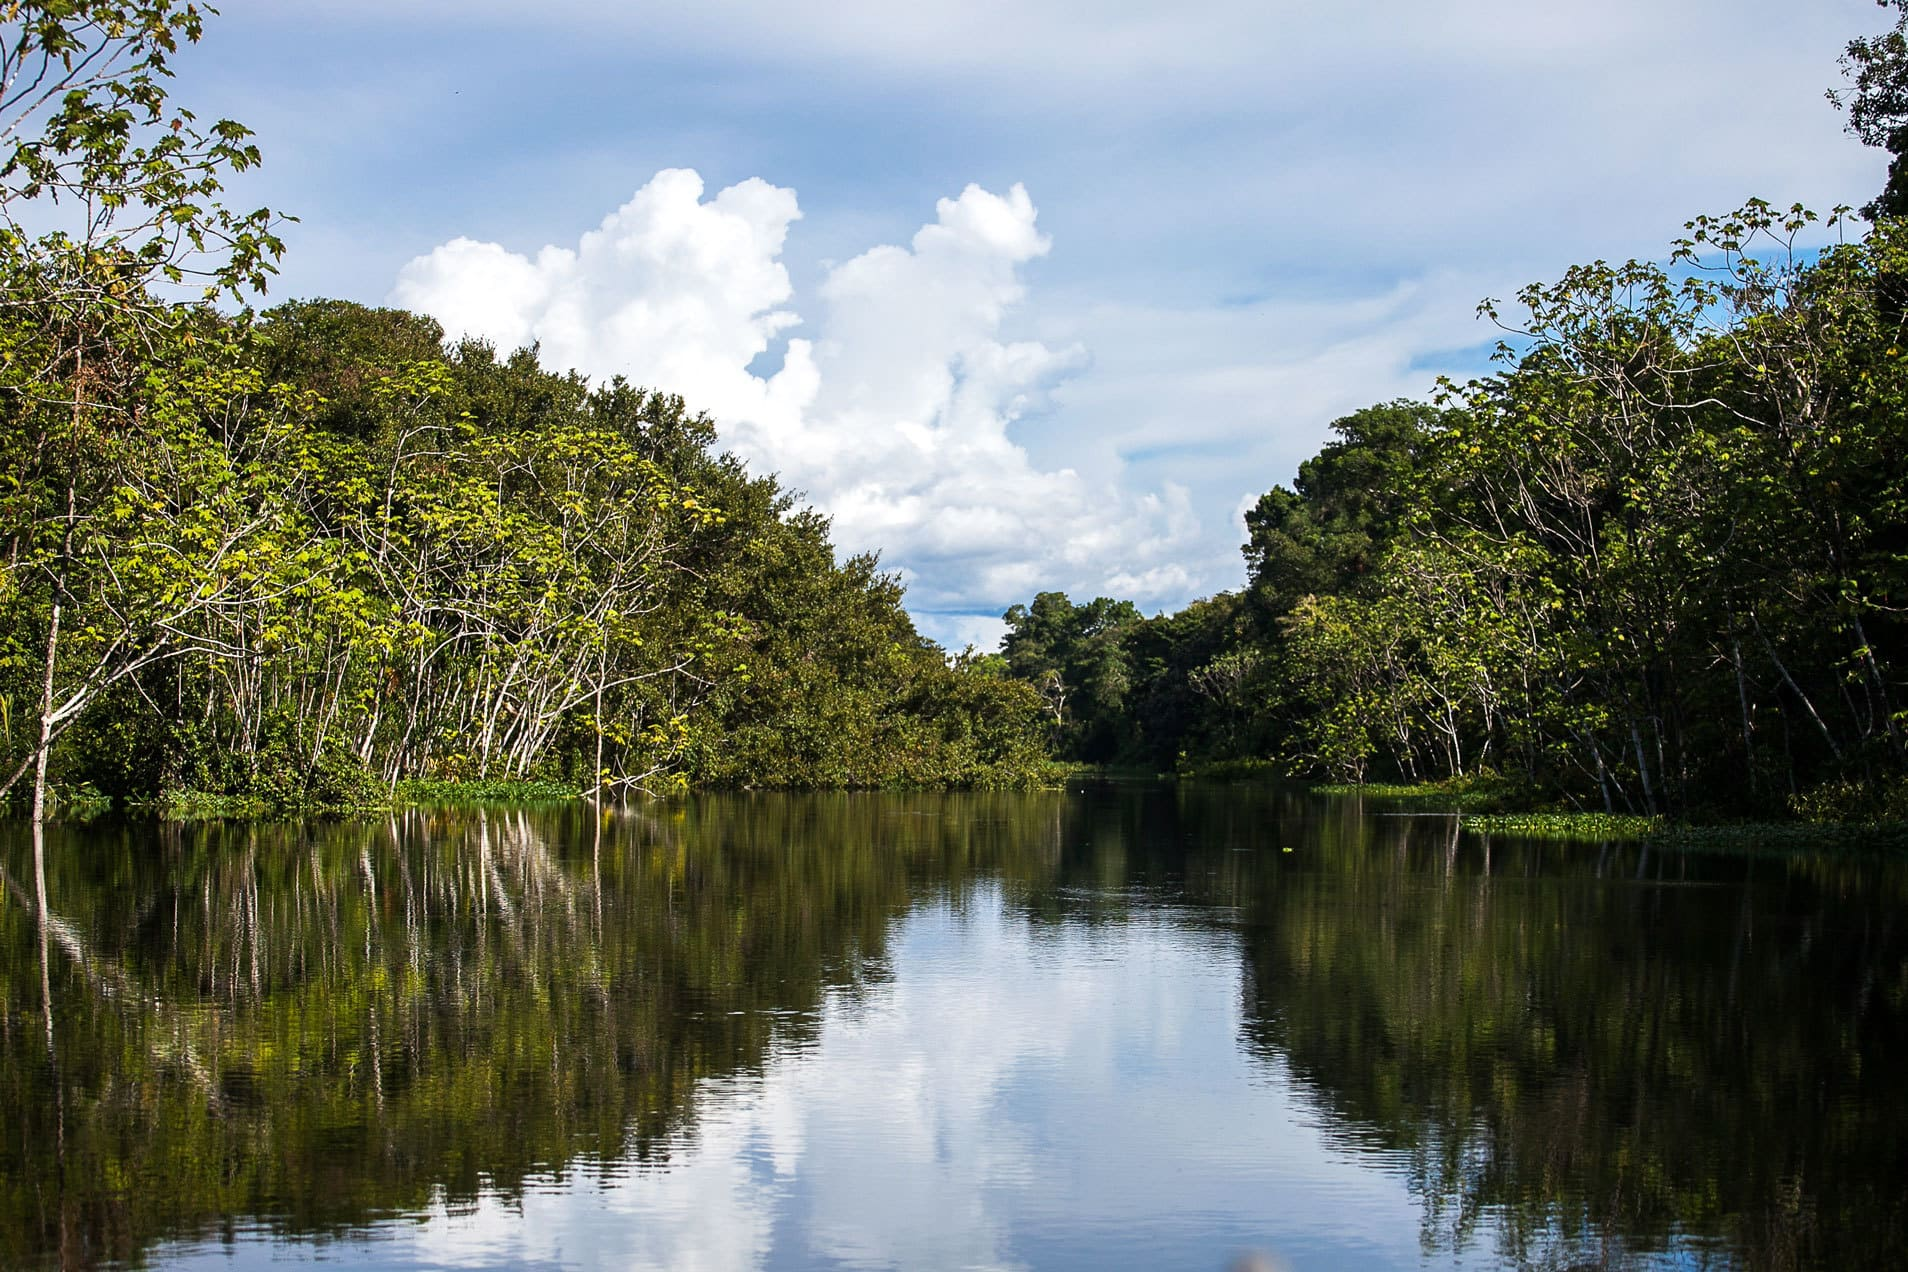 The Luxury Amazon River Cruise